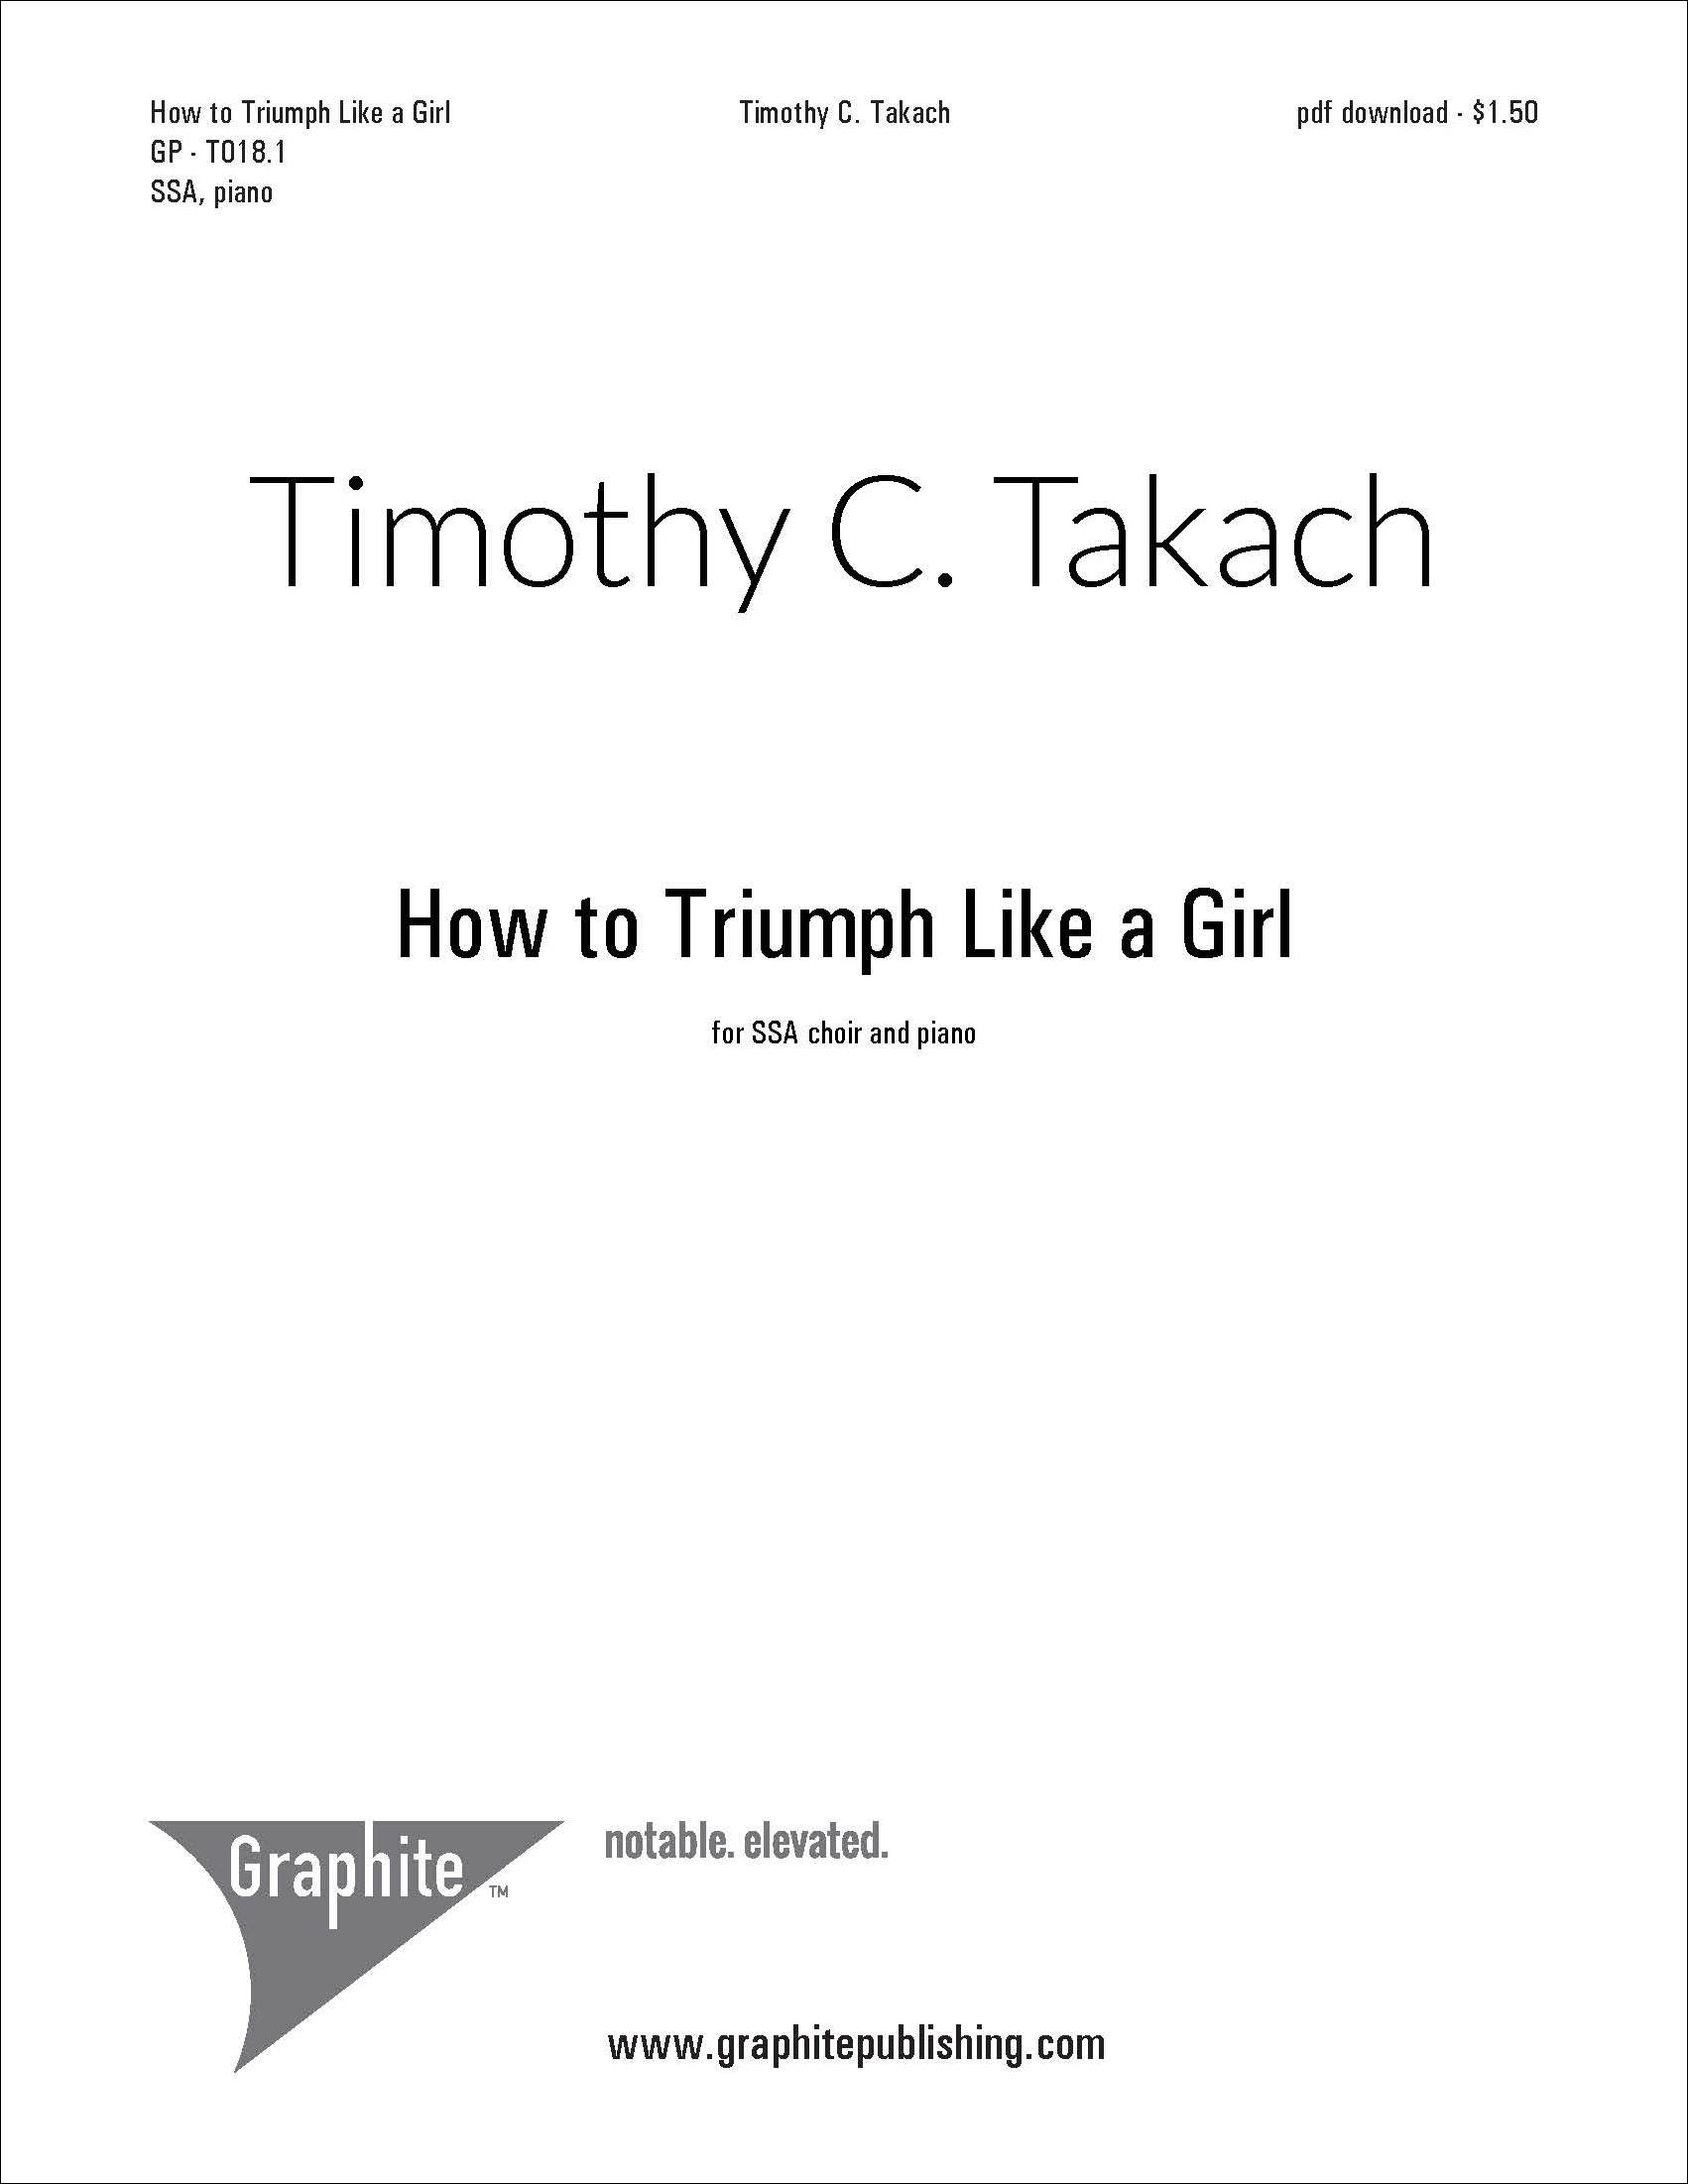 How to Triumph Like a Girl